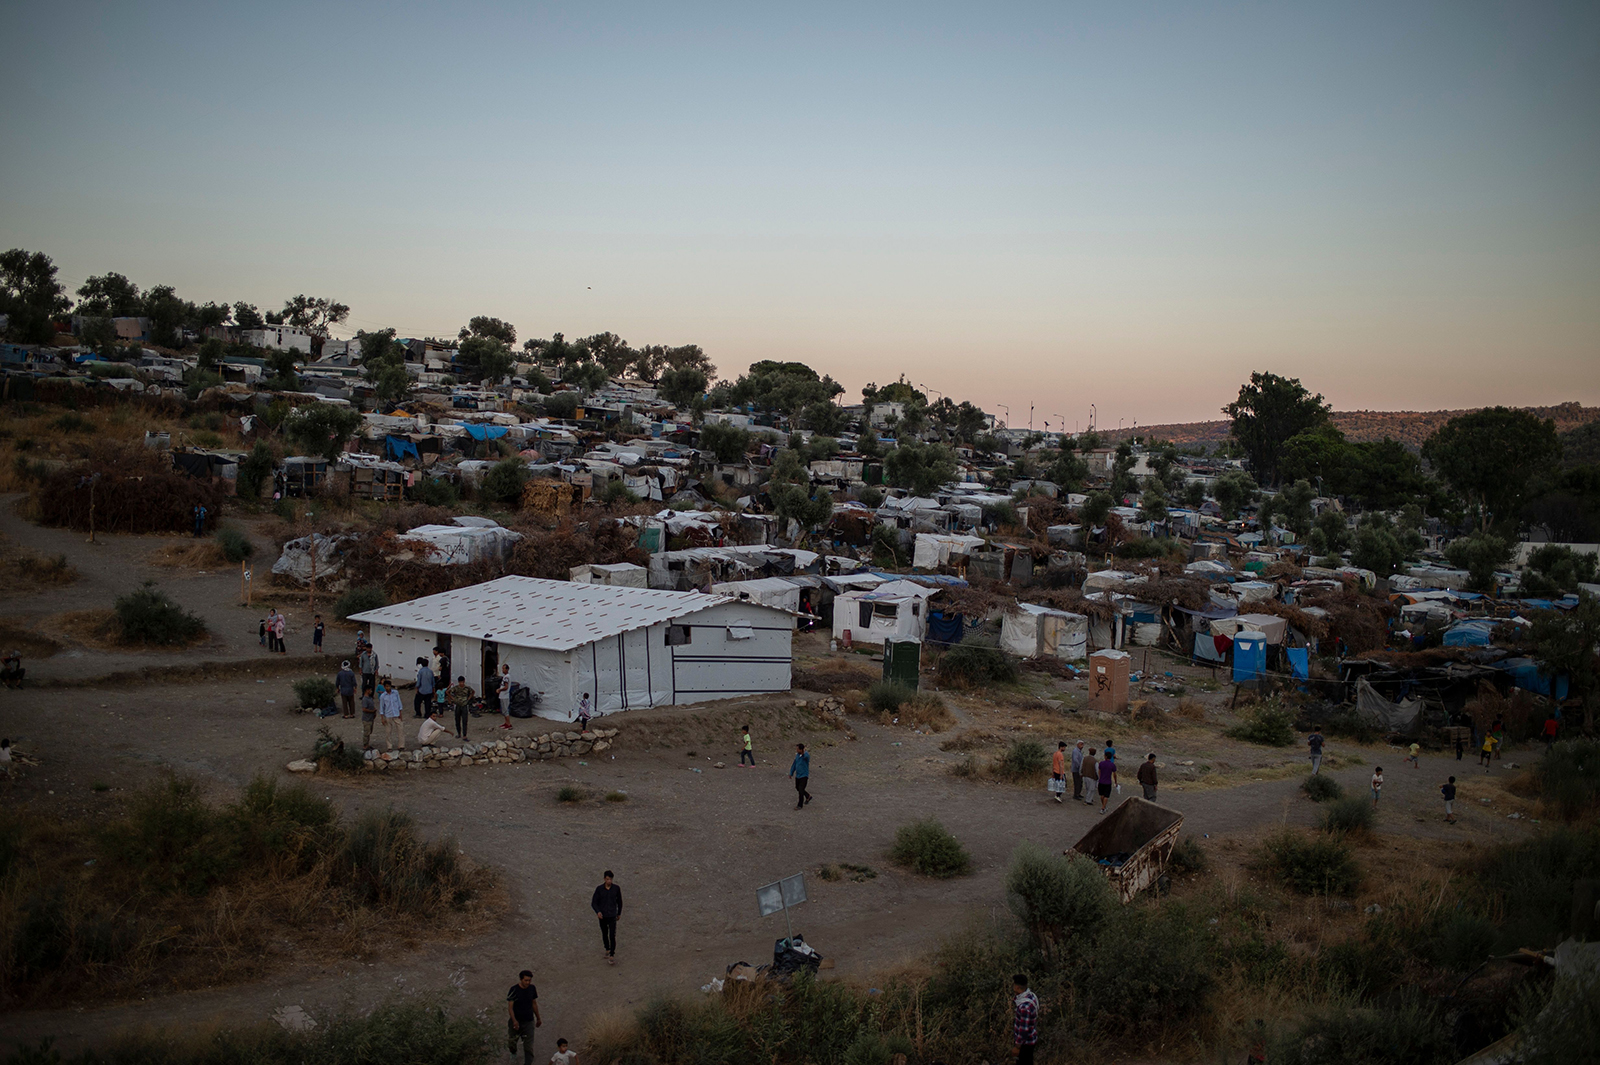 This photo taken on August 24 shows a part of the makeshift camp next to the refugee camp of Moria, in the island of Lesbos.